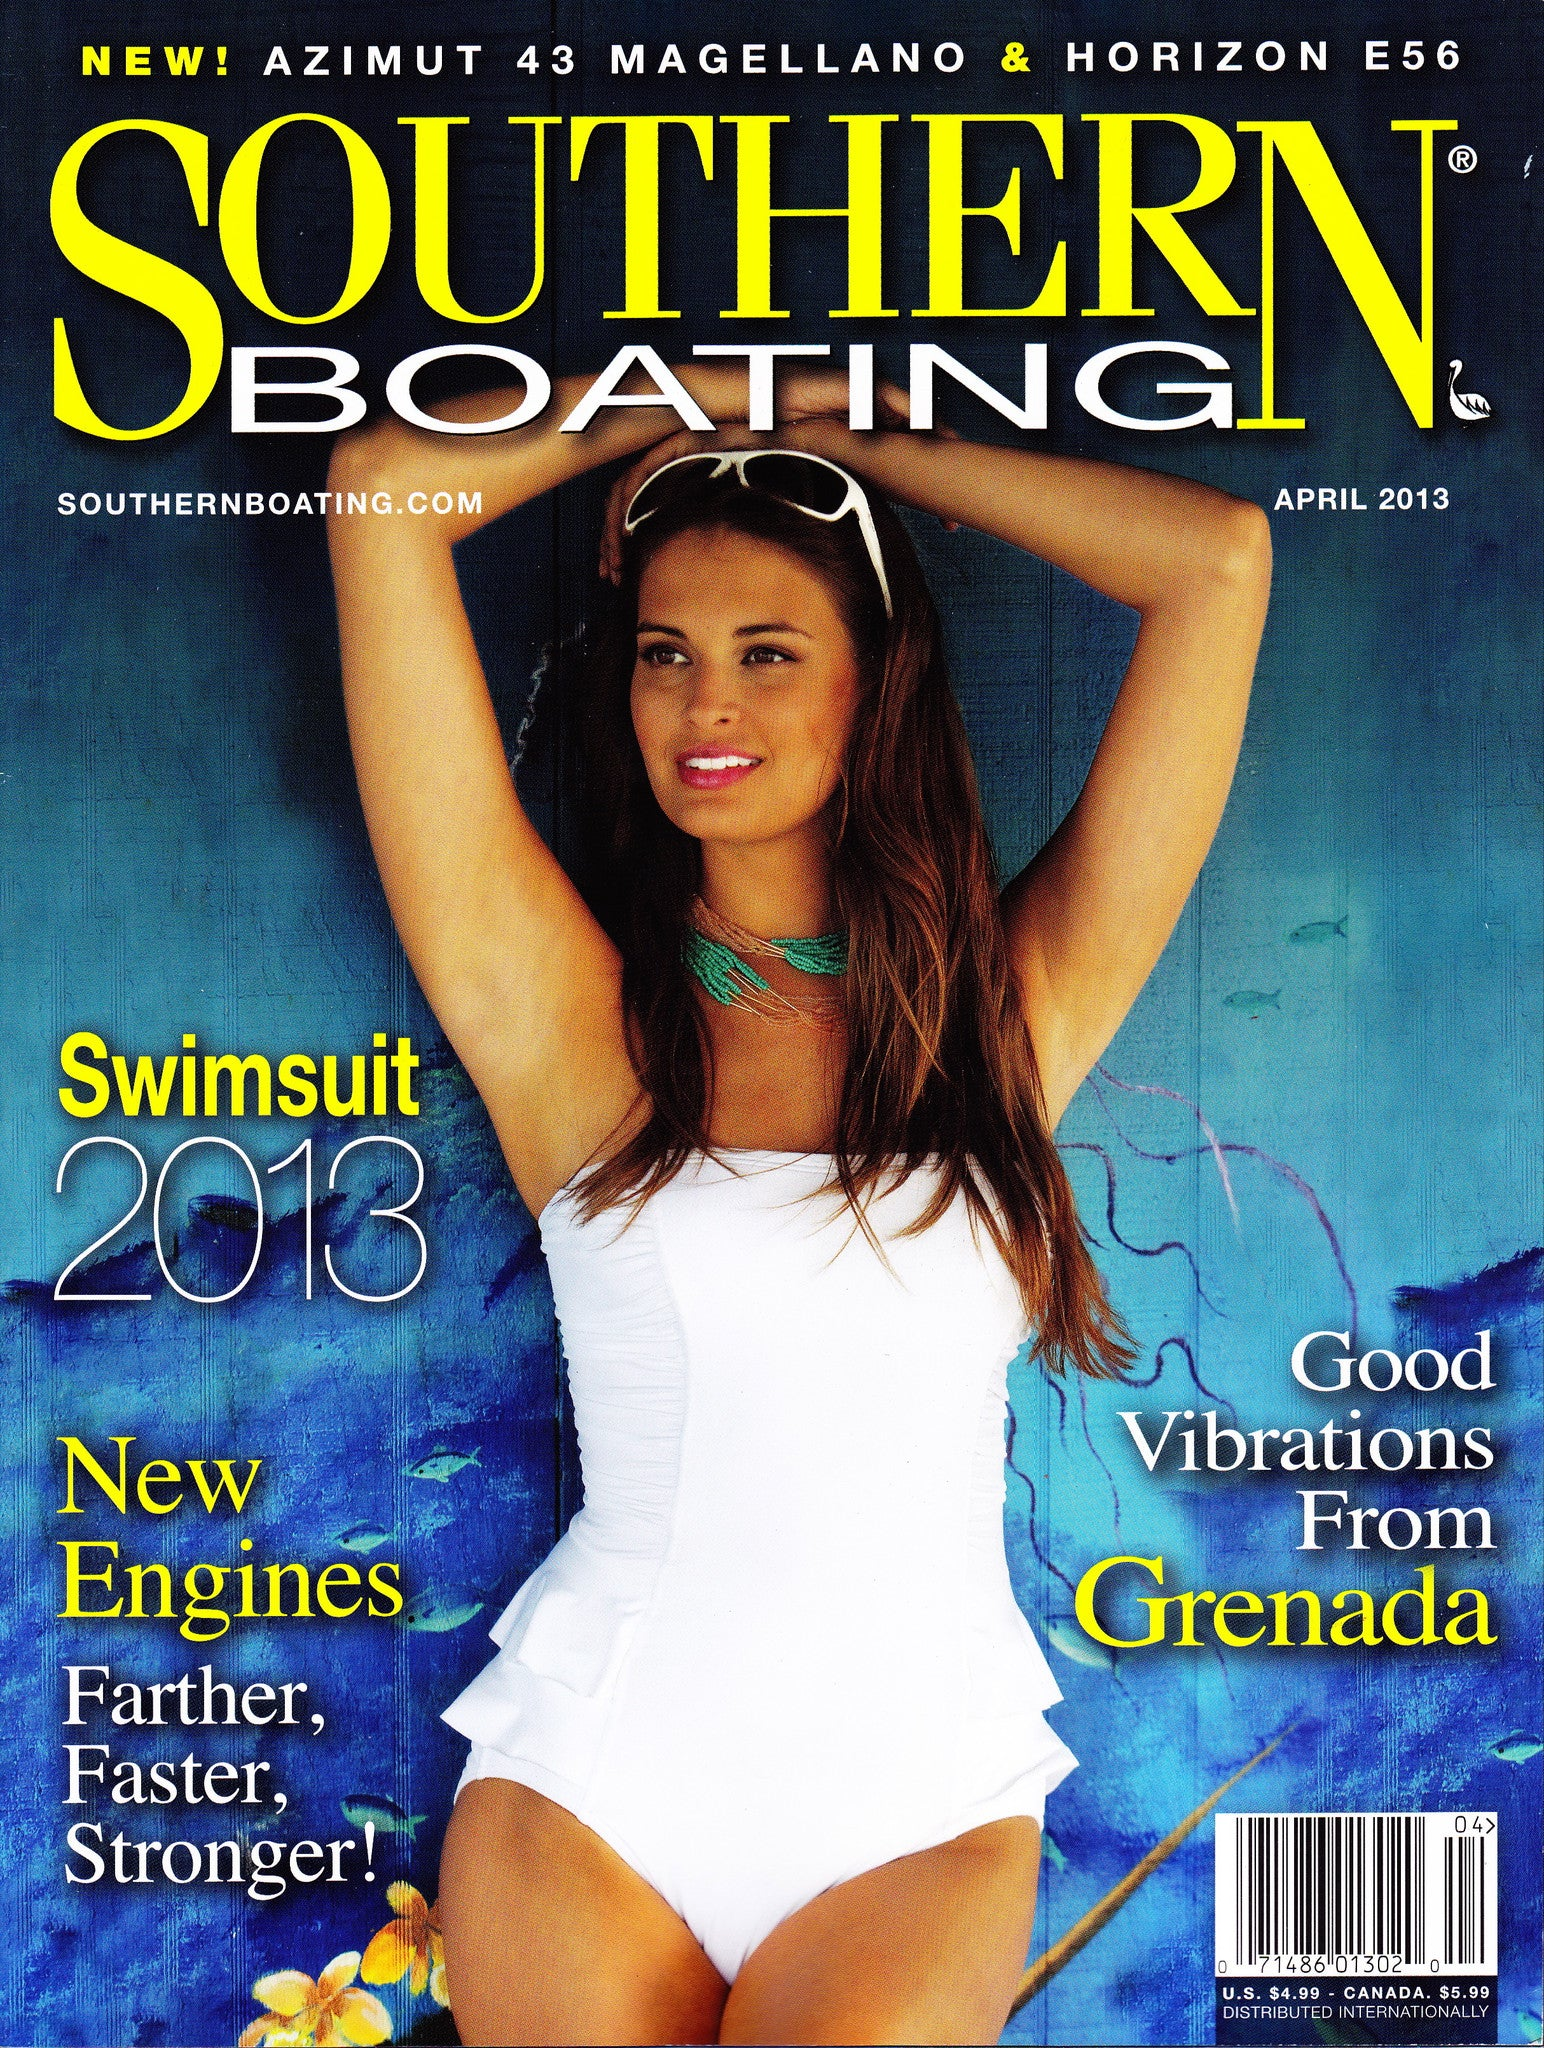 Southern Boating magazine 2013 Swimsuit edition